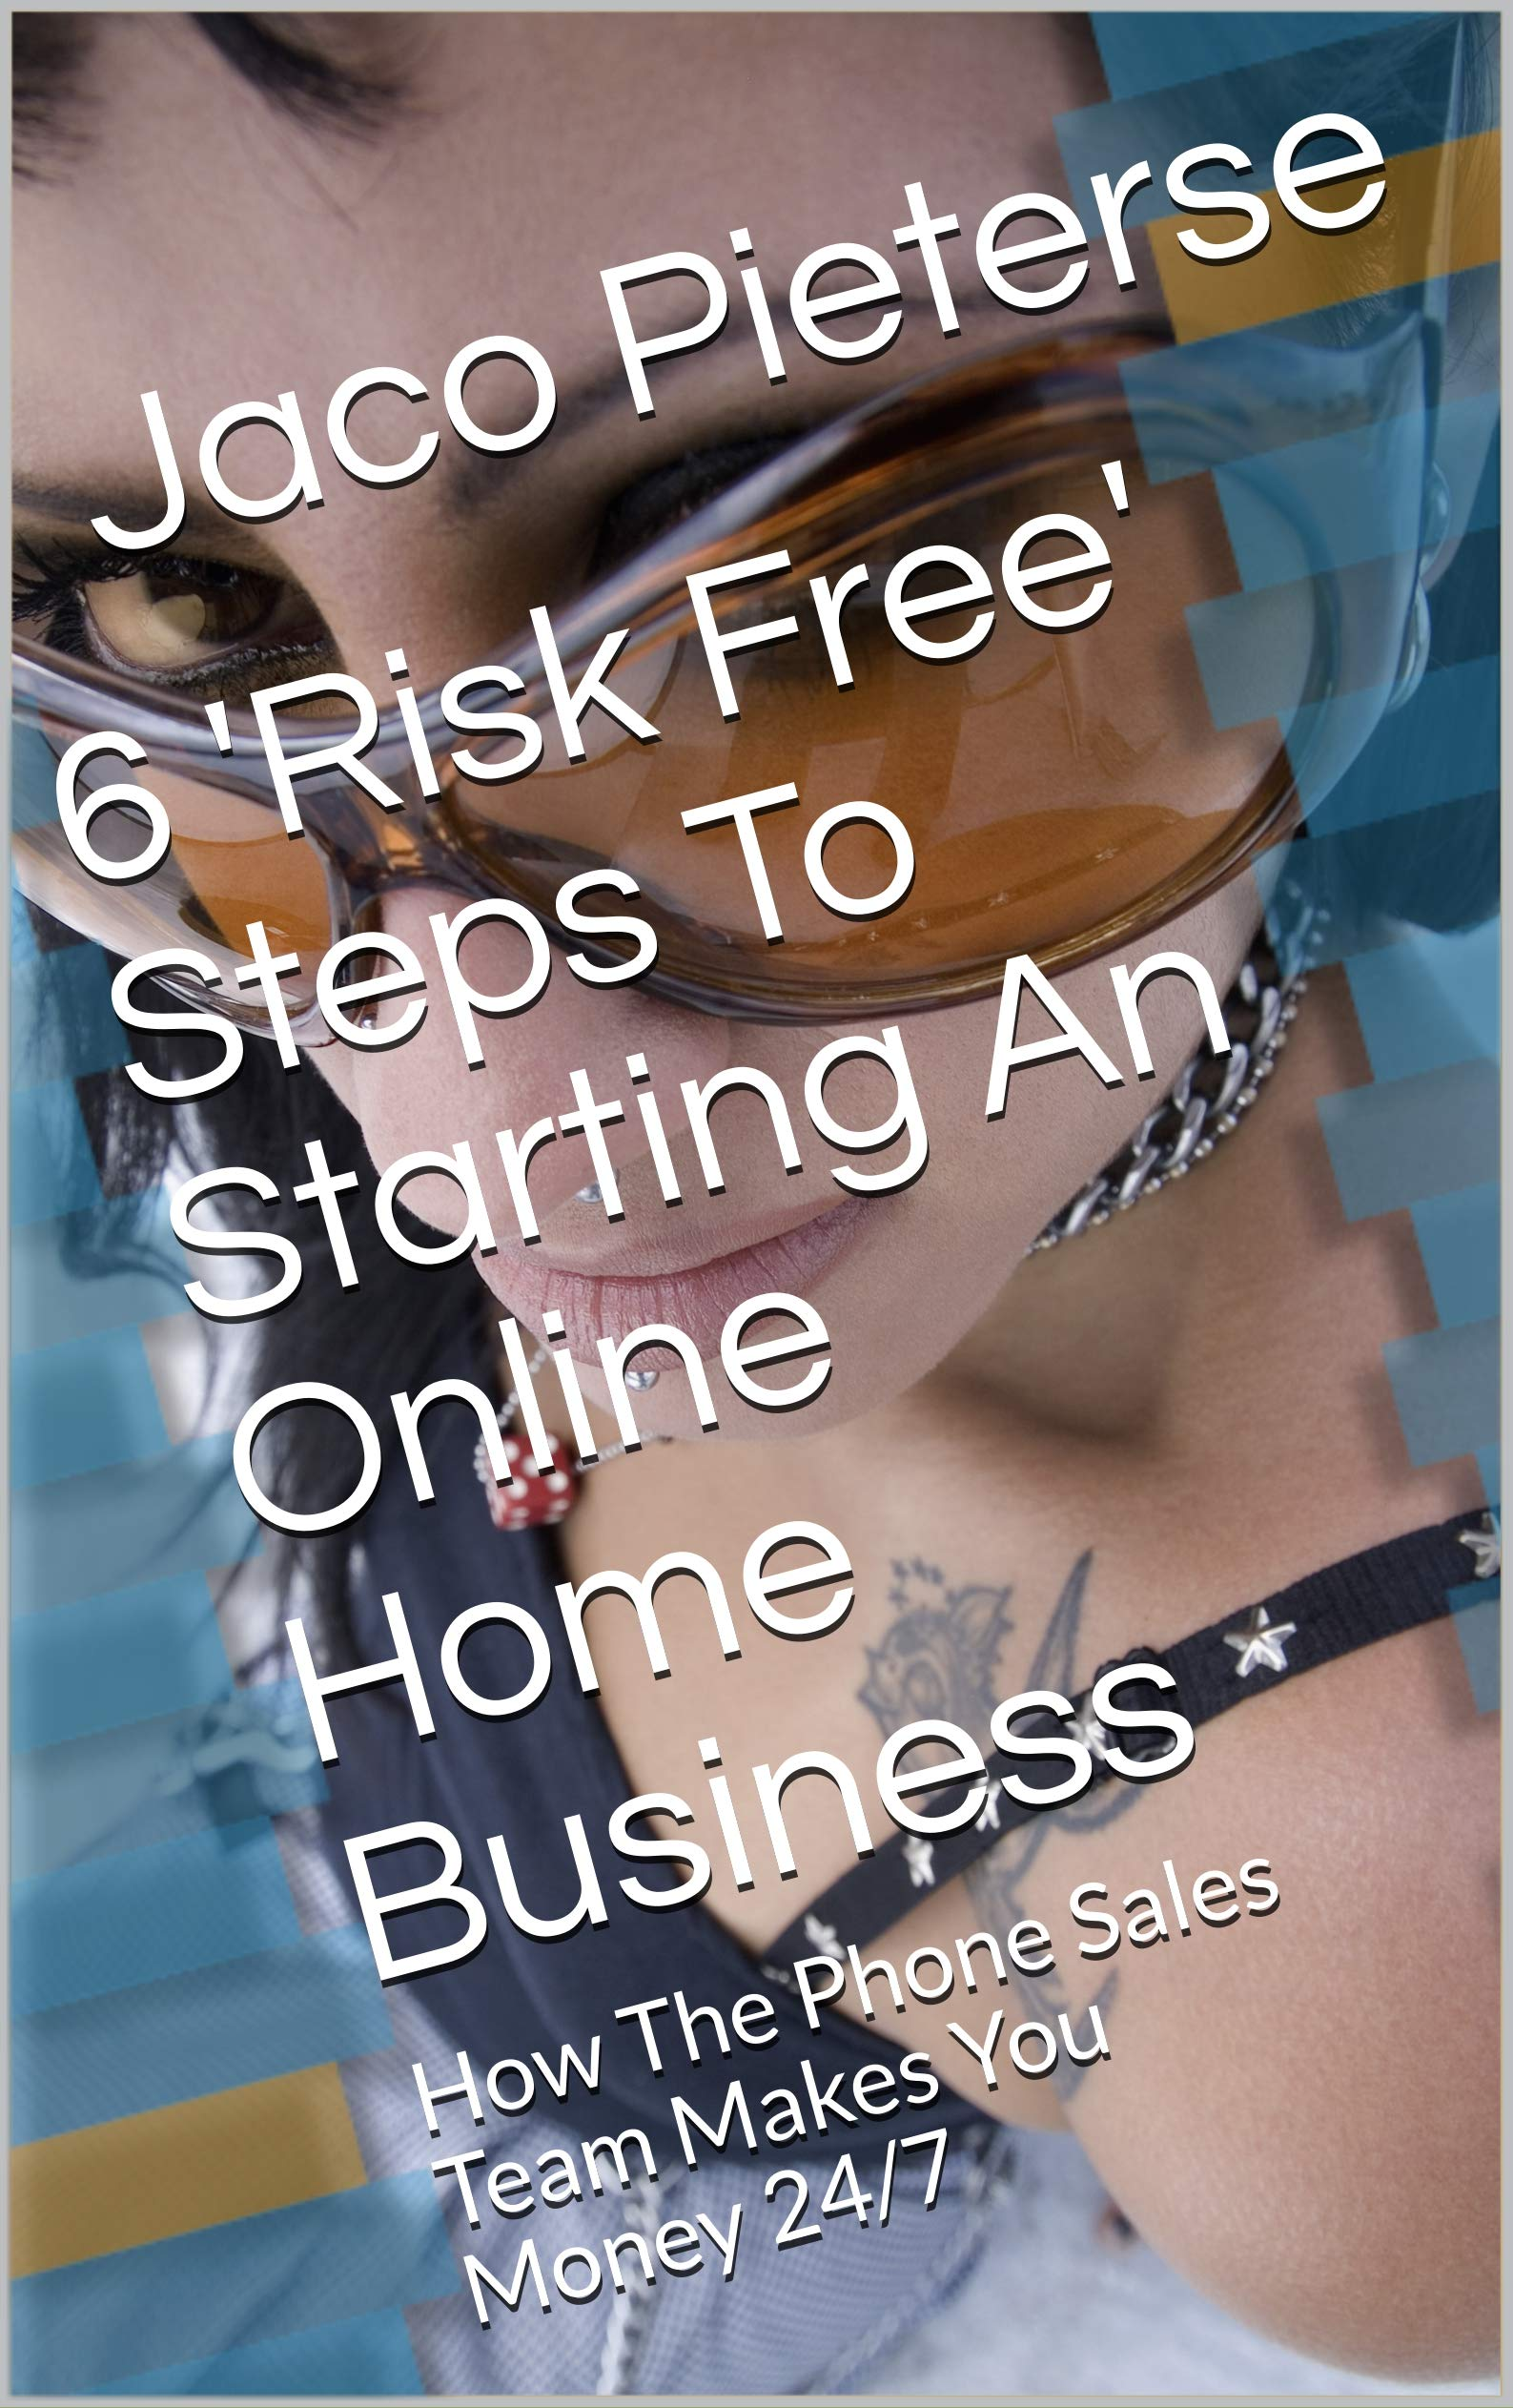 6 'Risk Free' Steps To Starting An Online Home Business: How The Phone Sales Team Makes You Money 24/7